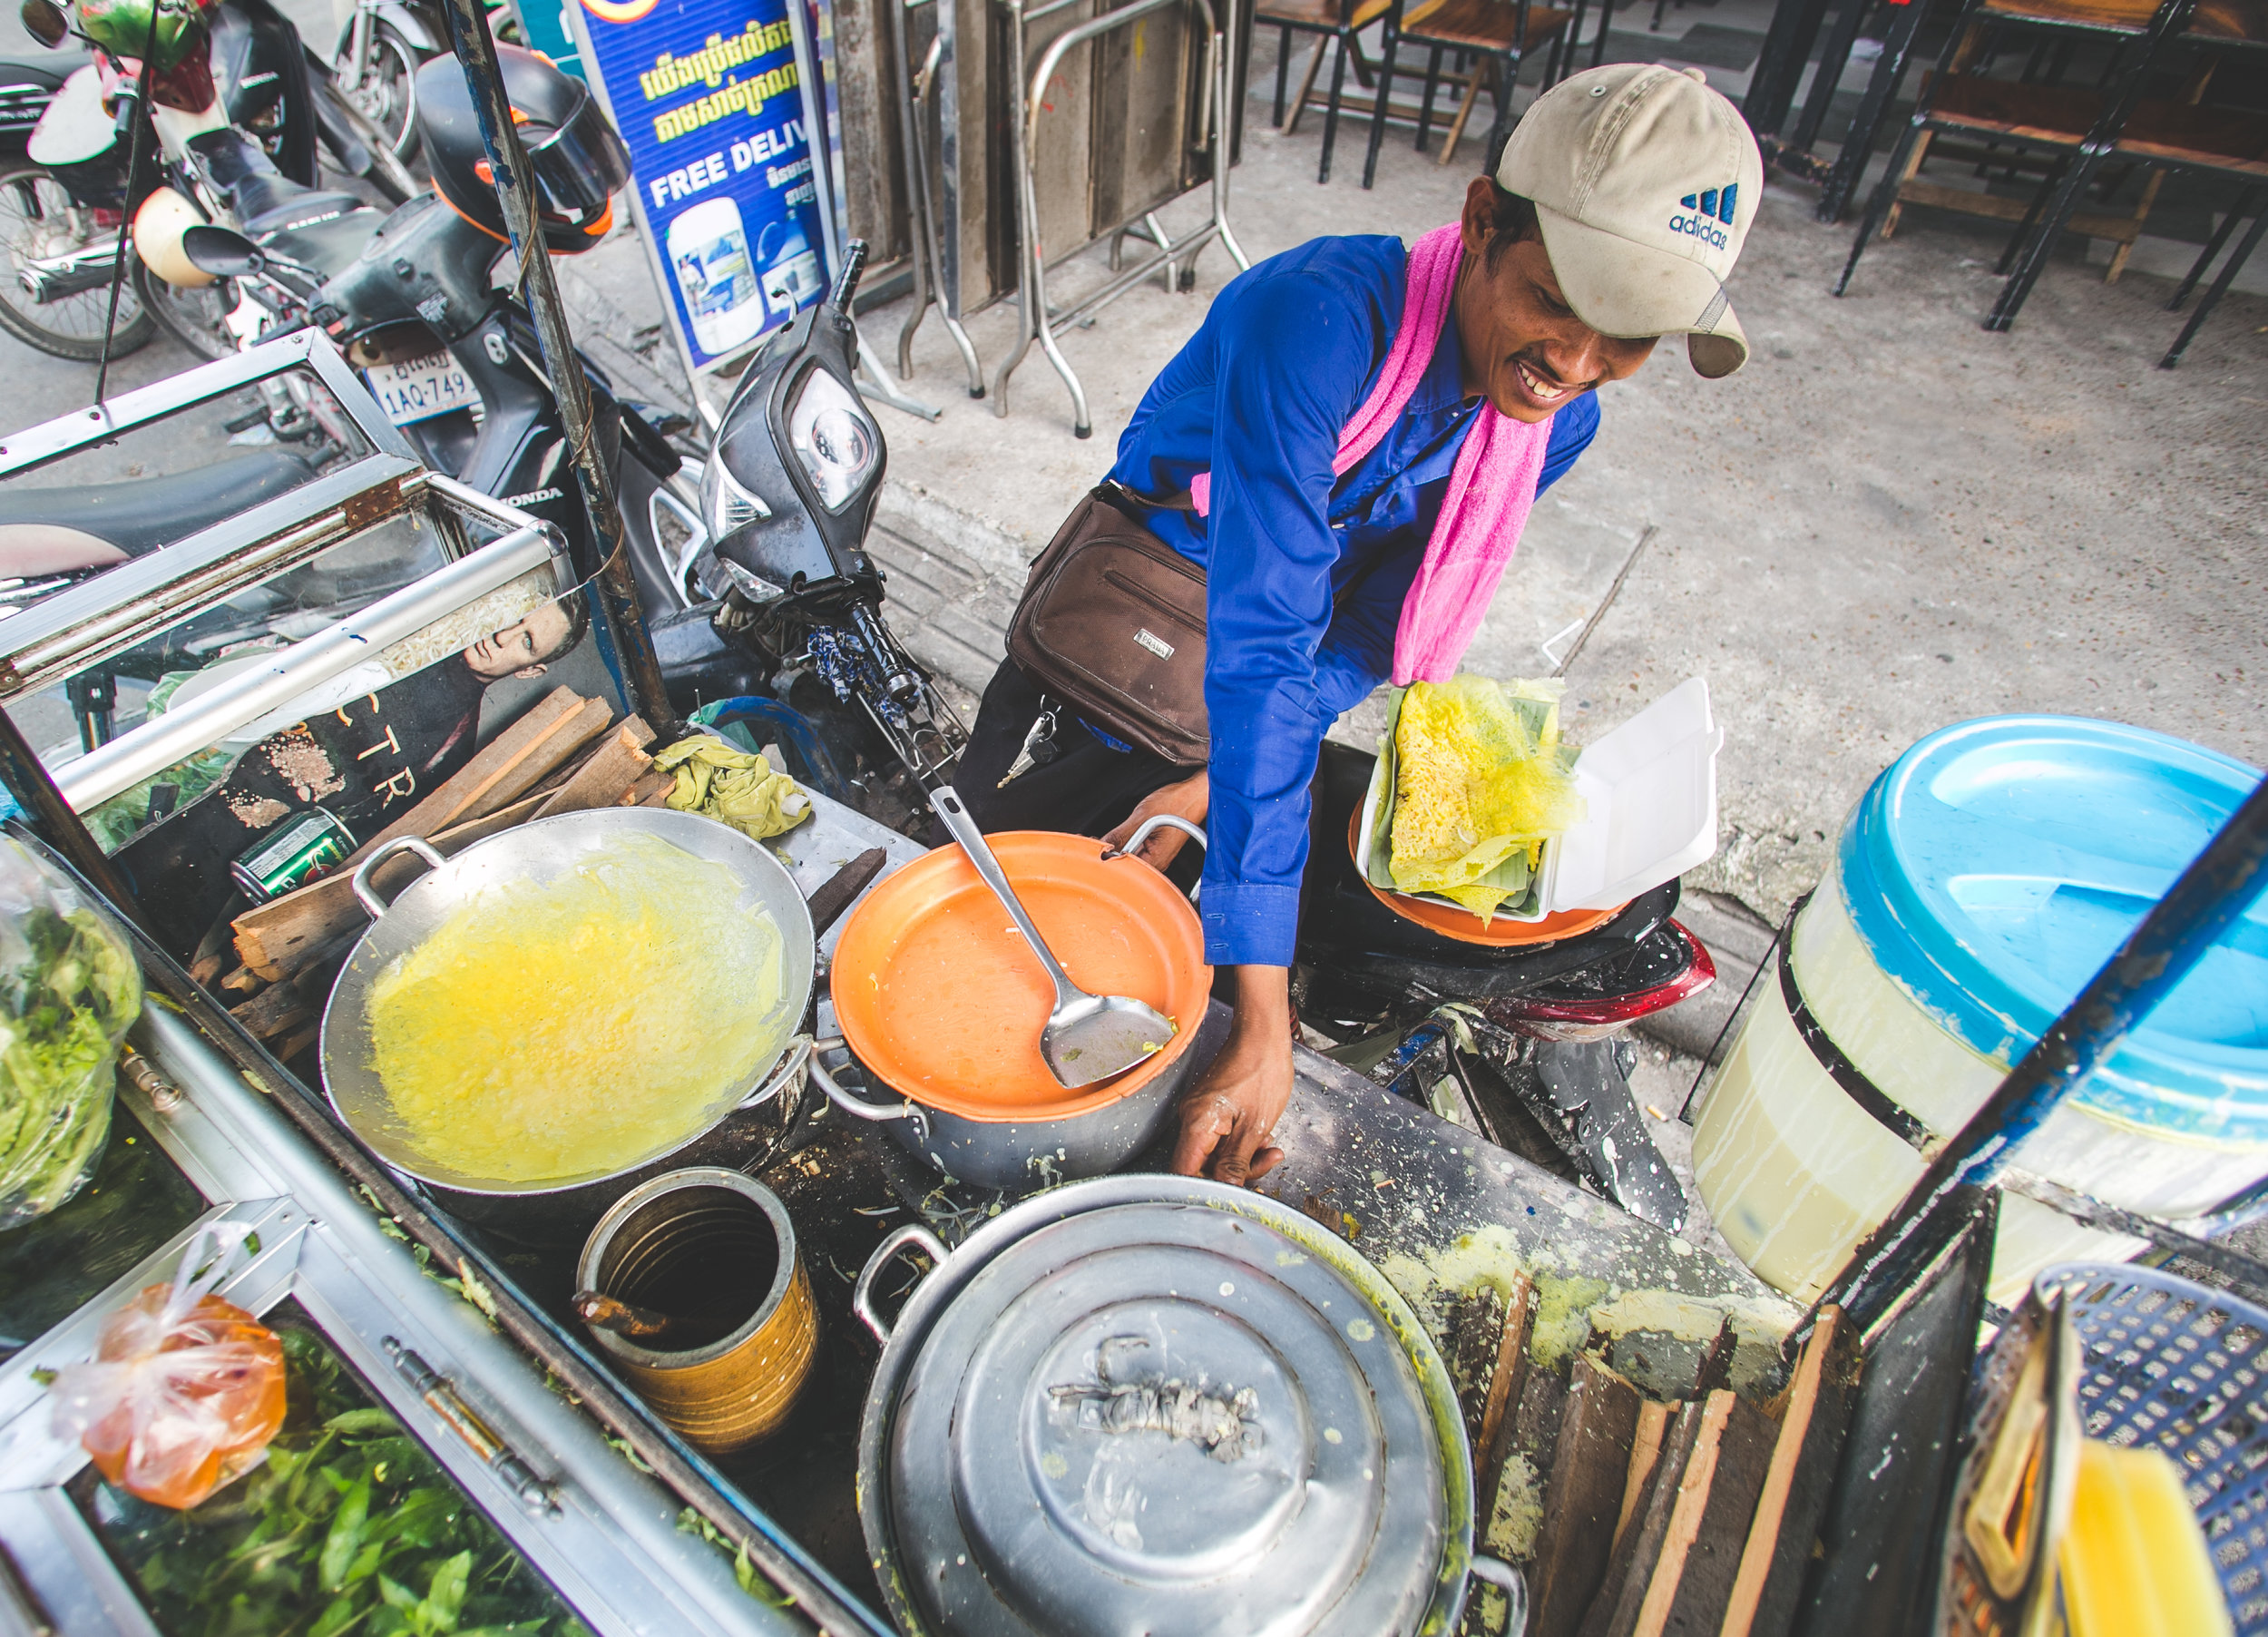 A street vendor makes Num Banh Xeo - or Khmer Meat Crepes. Authentic Khmer uses an uncooked rice mixture (instead of flour) and pork to make a crepe. It is then filled with green onions, sweet fish sauce, sugar and black pepper. The vendor was selling one crepe for about 80 cents usd.